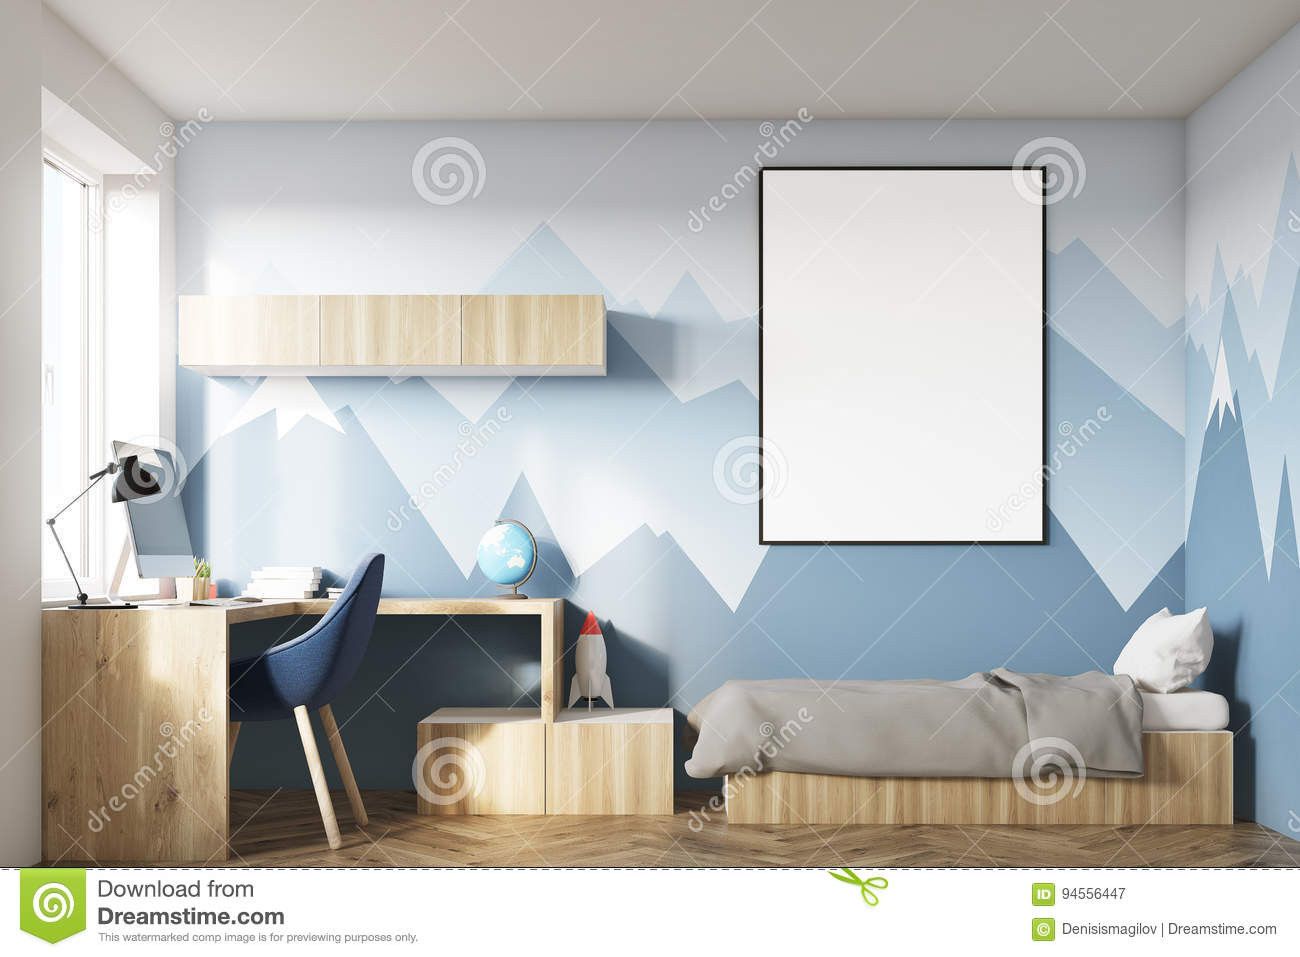 Simple Wallpaper Mountain Room - kids-room-poster-mountain-wall-interior-hanging-above-bed-bookshelves-blue-chair-wallpaper-d-rendering-mock-up-94556447  Best Photo Reference_139337.jpg